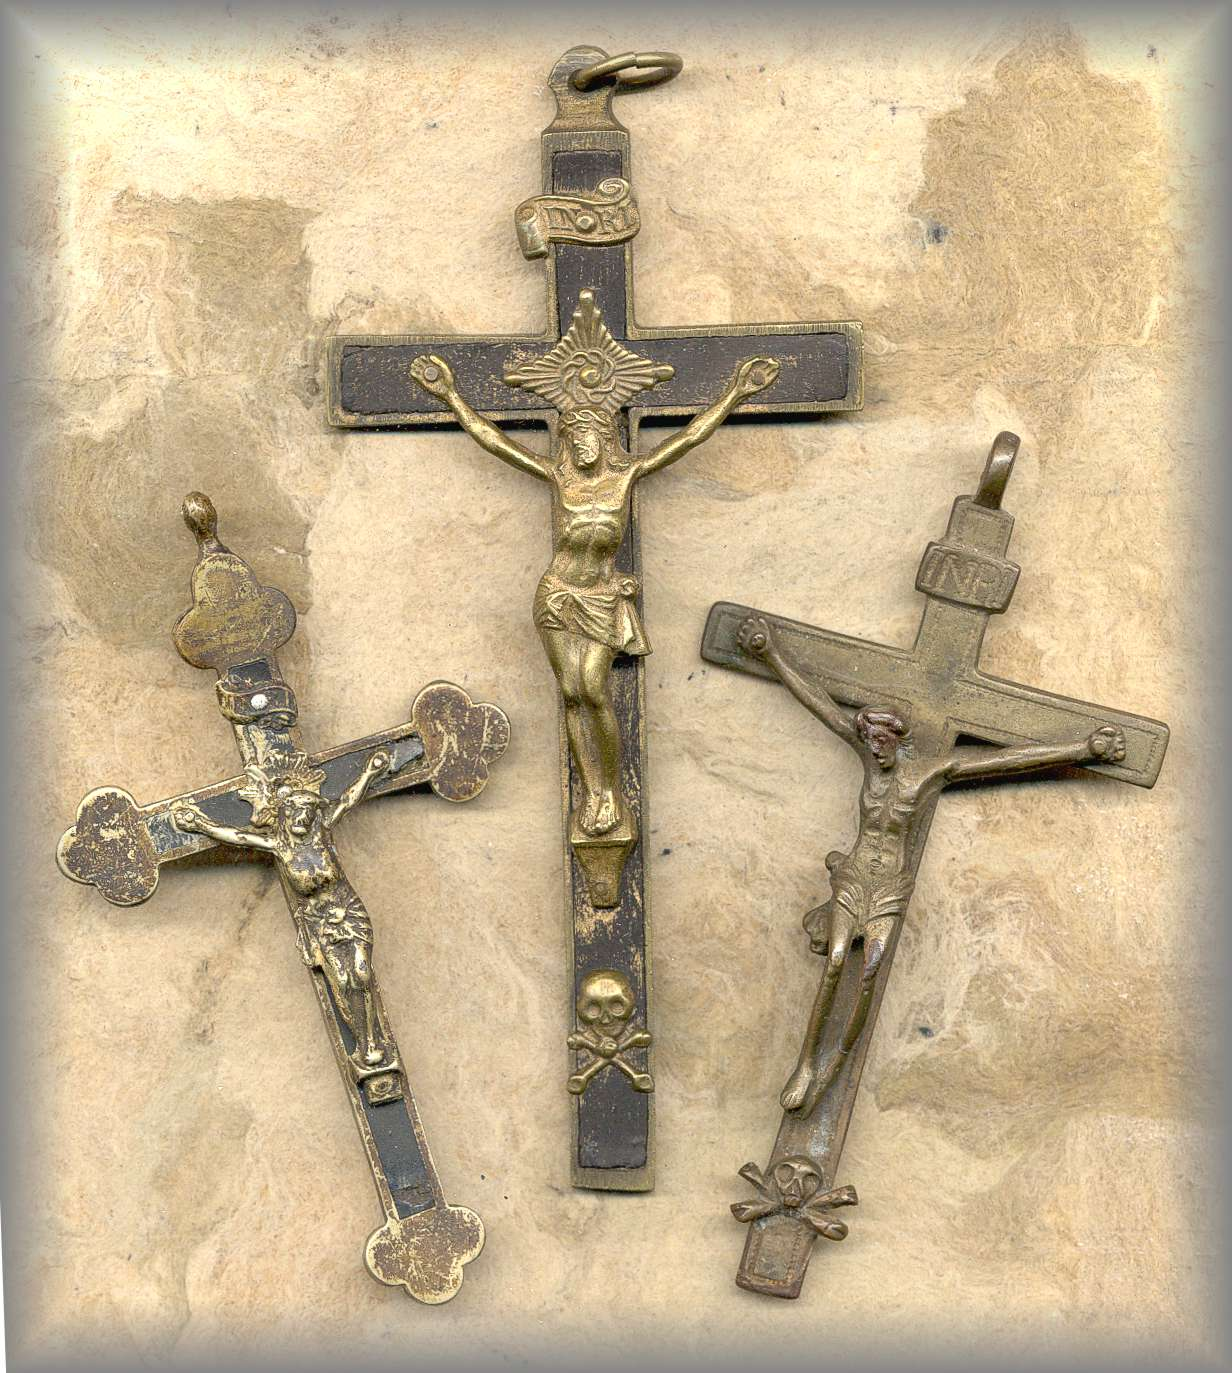 Rosary workshop rosary museum crucifixes europe early latin rosary workshop rosary museum crucifixes europe early latin american skulls biocorpaavc Choice Image